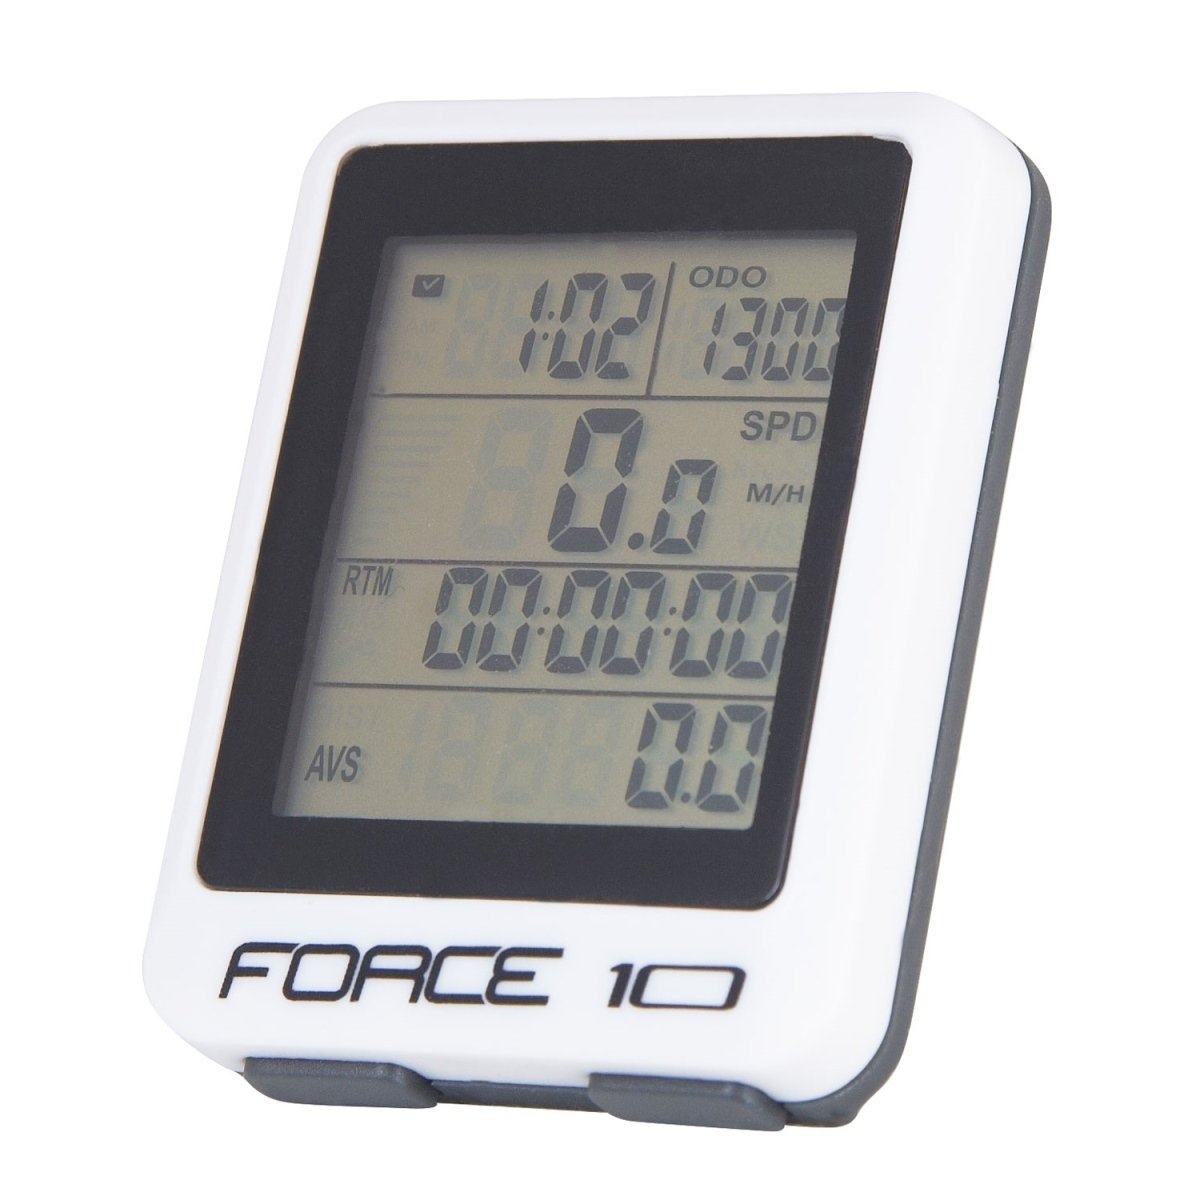 Force cykelcomputer 10 funktioner hvid | Cykelcomputere